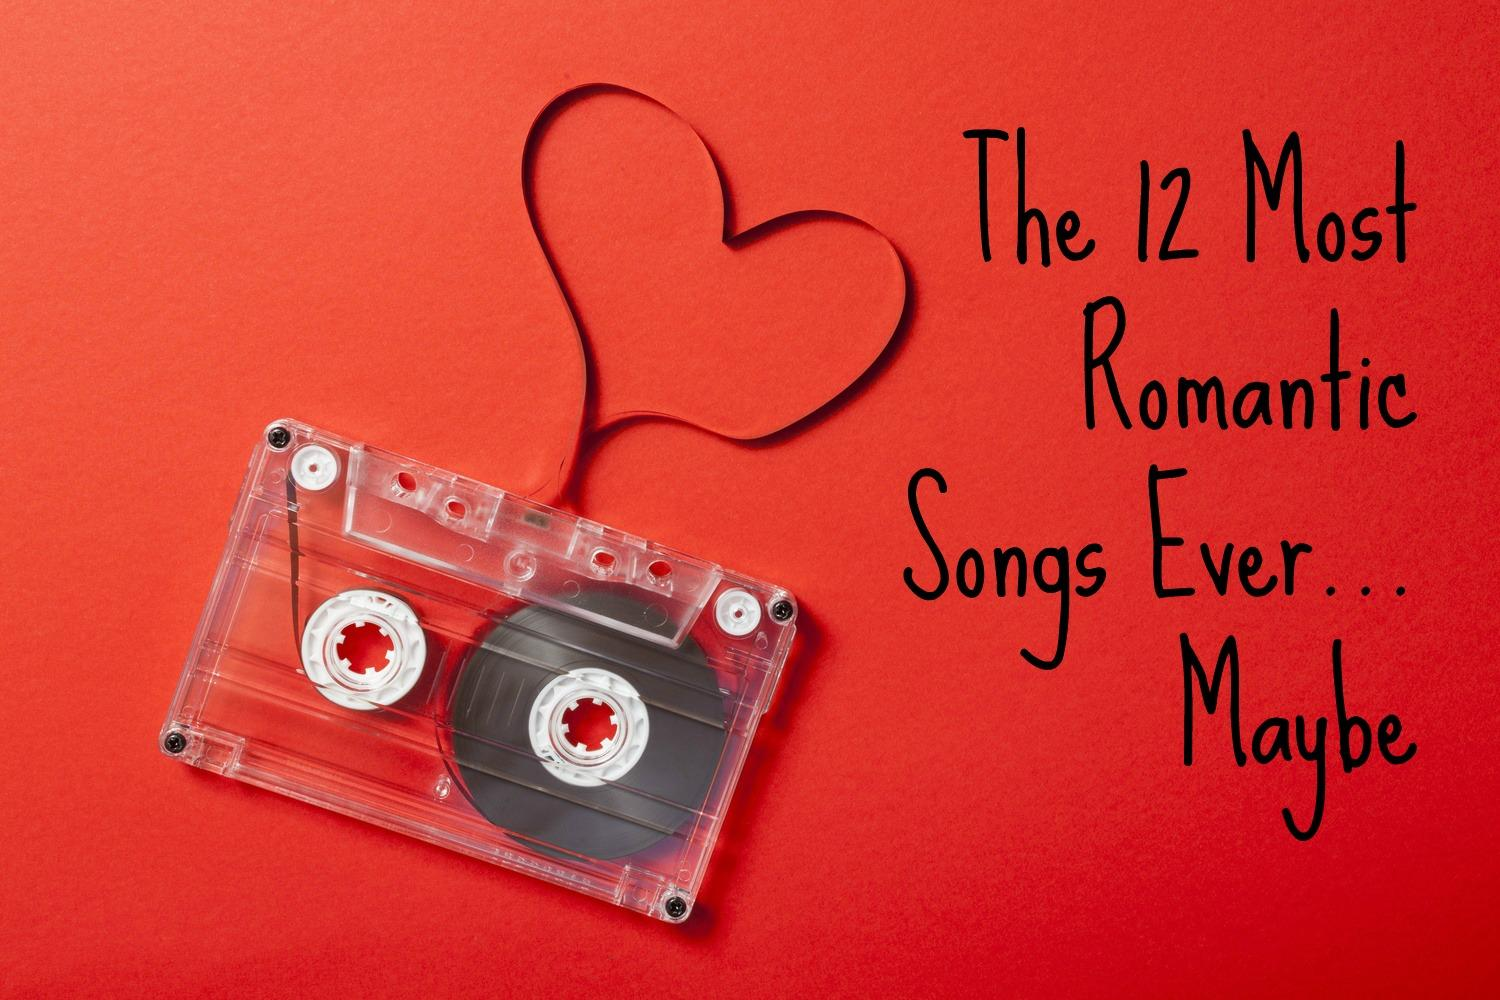 The 12 Most Romantic Songs Ever    Maybe | Soundcheck | New